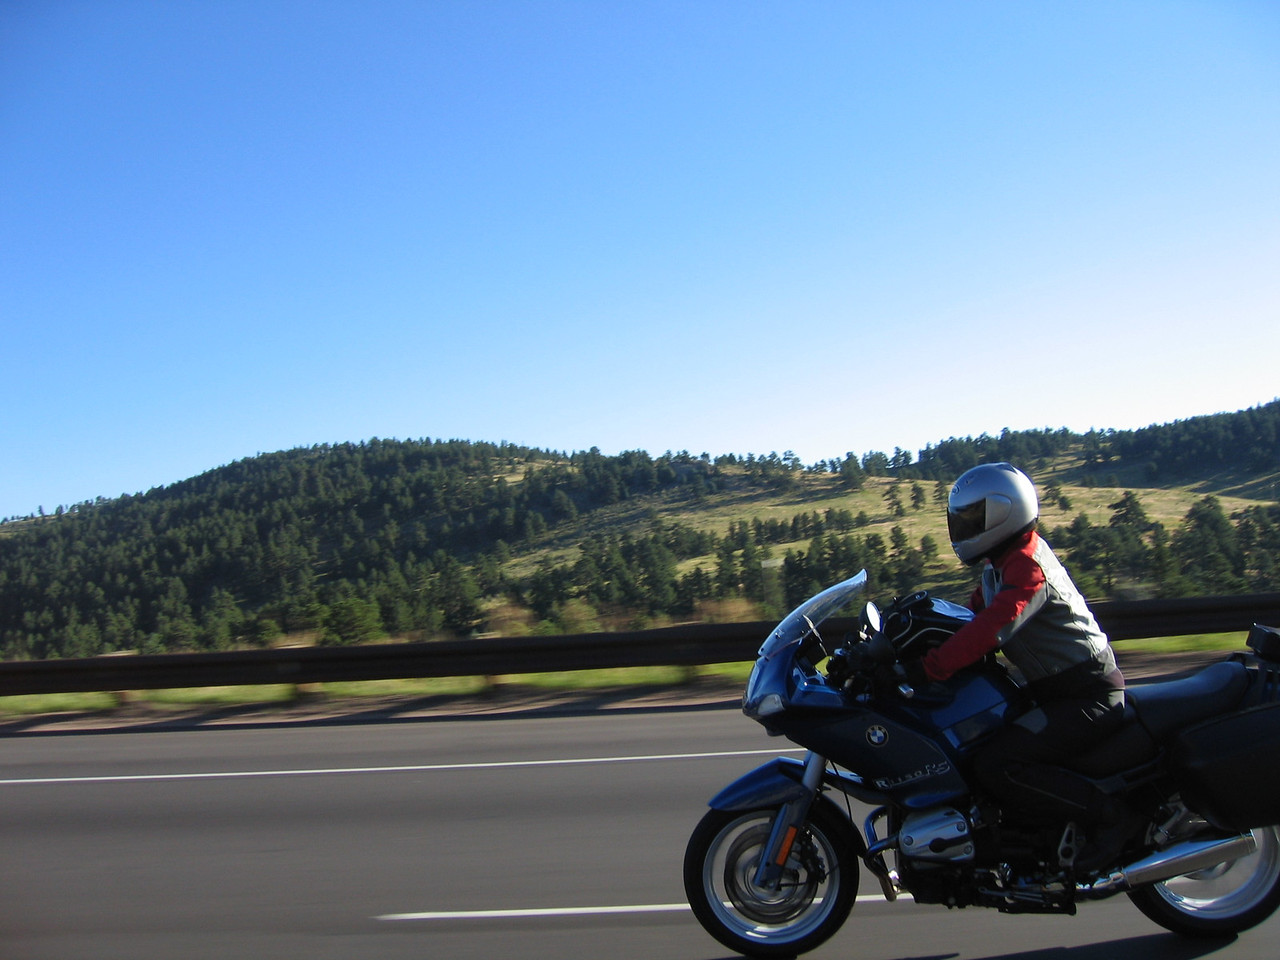 I was riding with a good friend, Liz Majors, who rides an R1150RS.  The route began with a ride up I-70 to the Evergreen exit, with the first pass being Squaw Peak pass.  Here's Liz at speed.